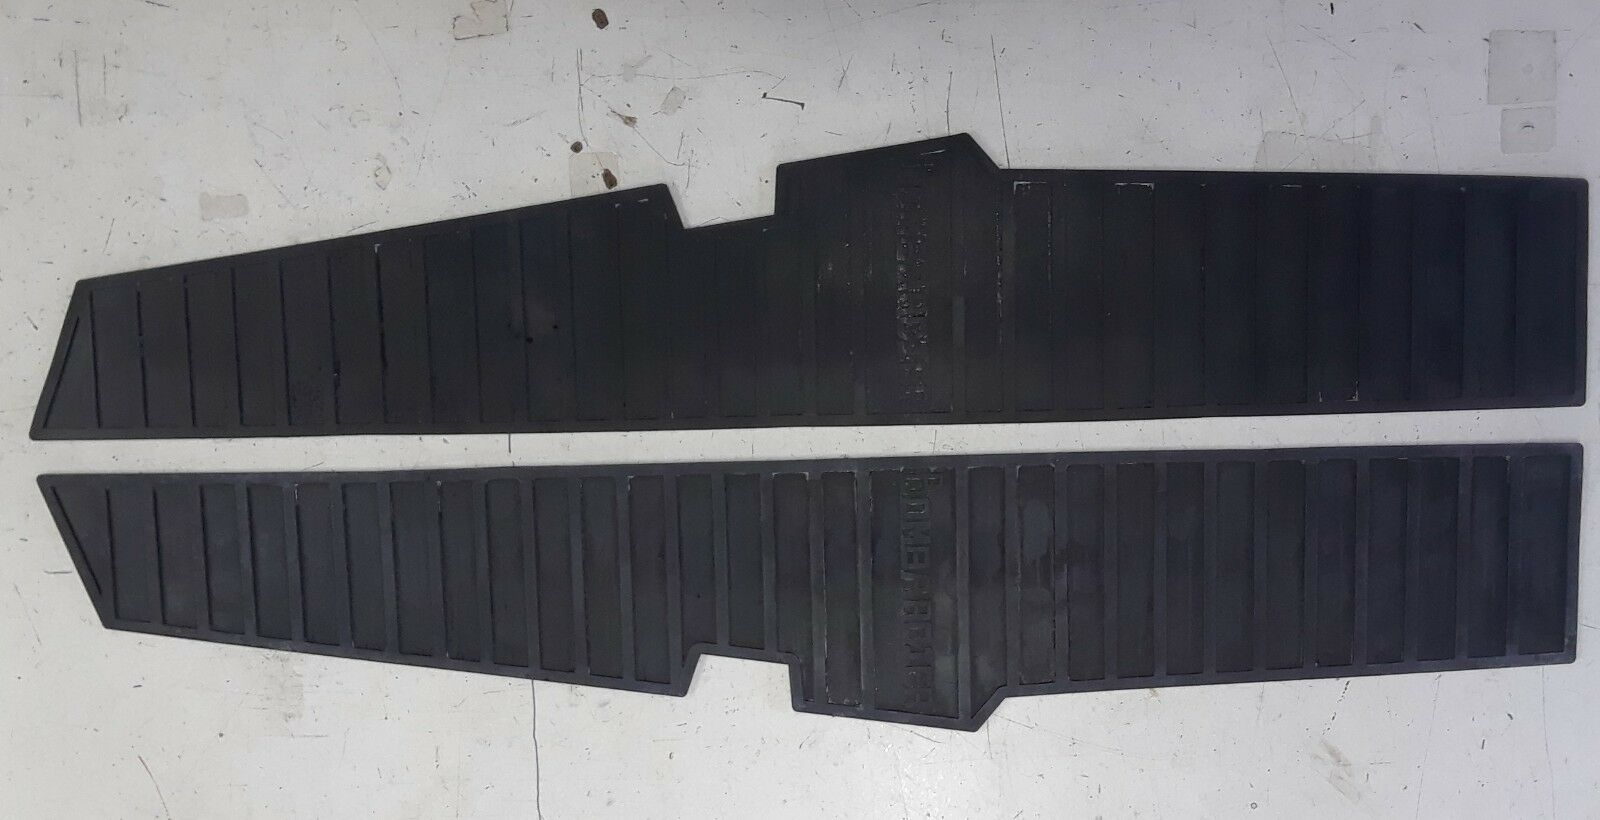 Vintage ski doo reproduction '67-'68 running board mats for Olympic